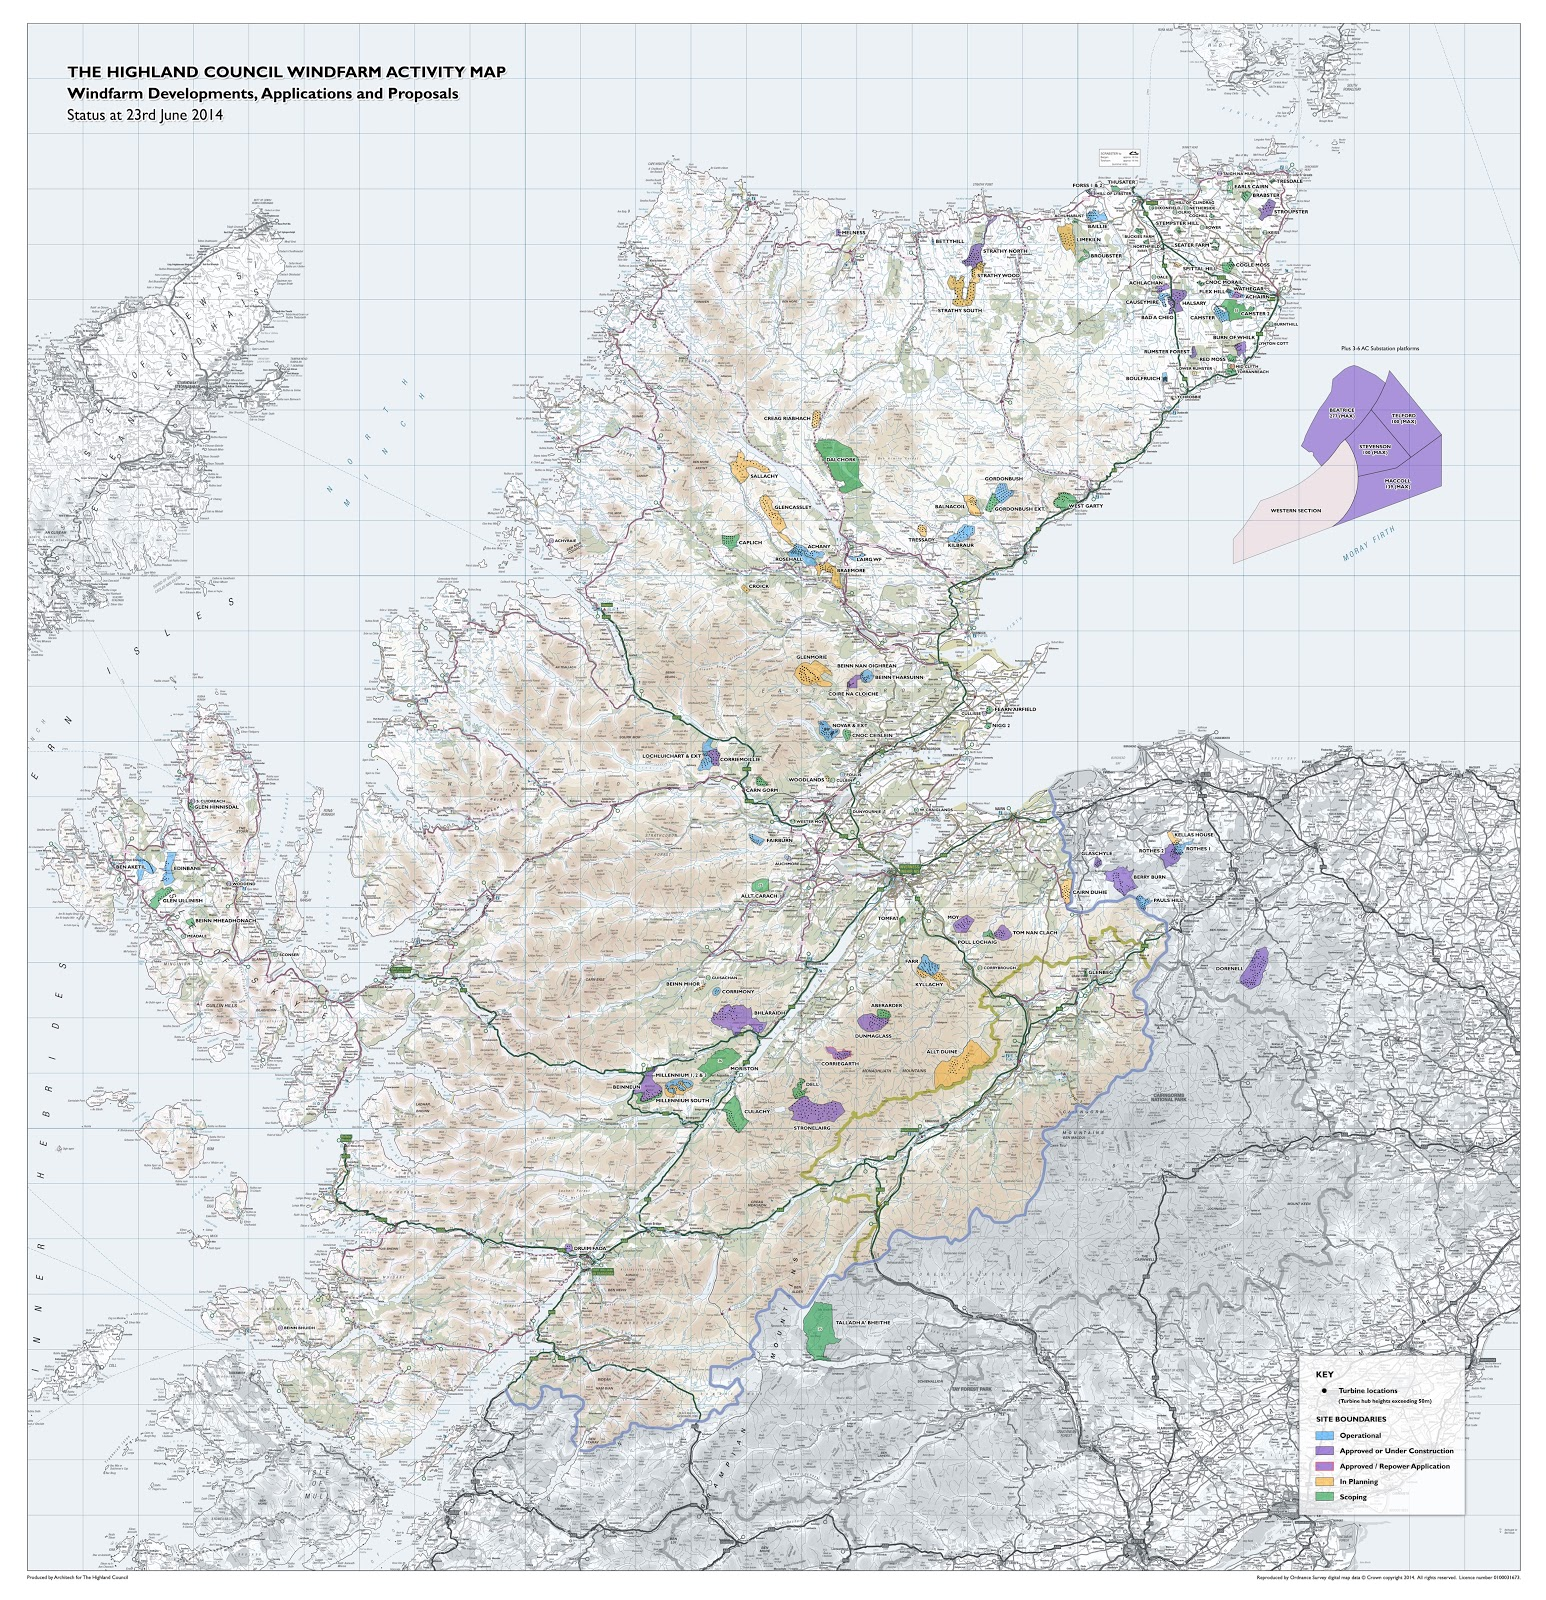 [Highland_Windfarm_Activity_June_2014%255B6%255D.jpg]